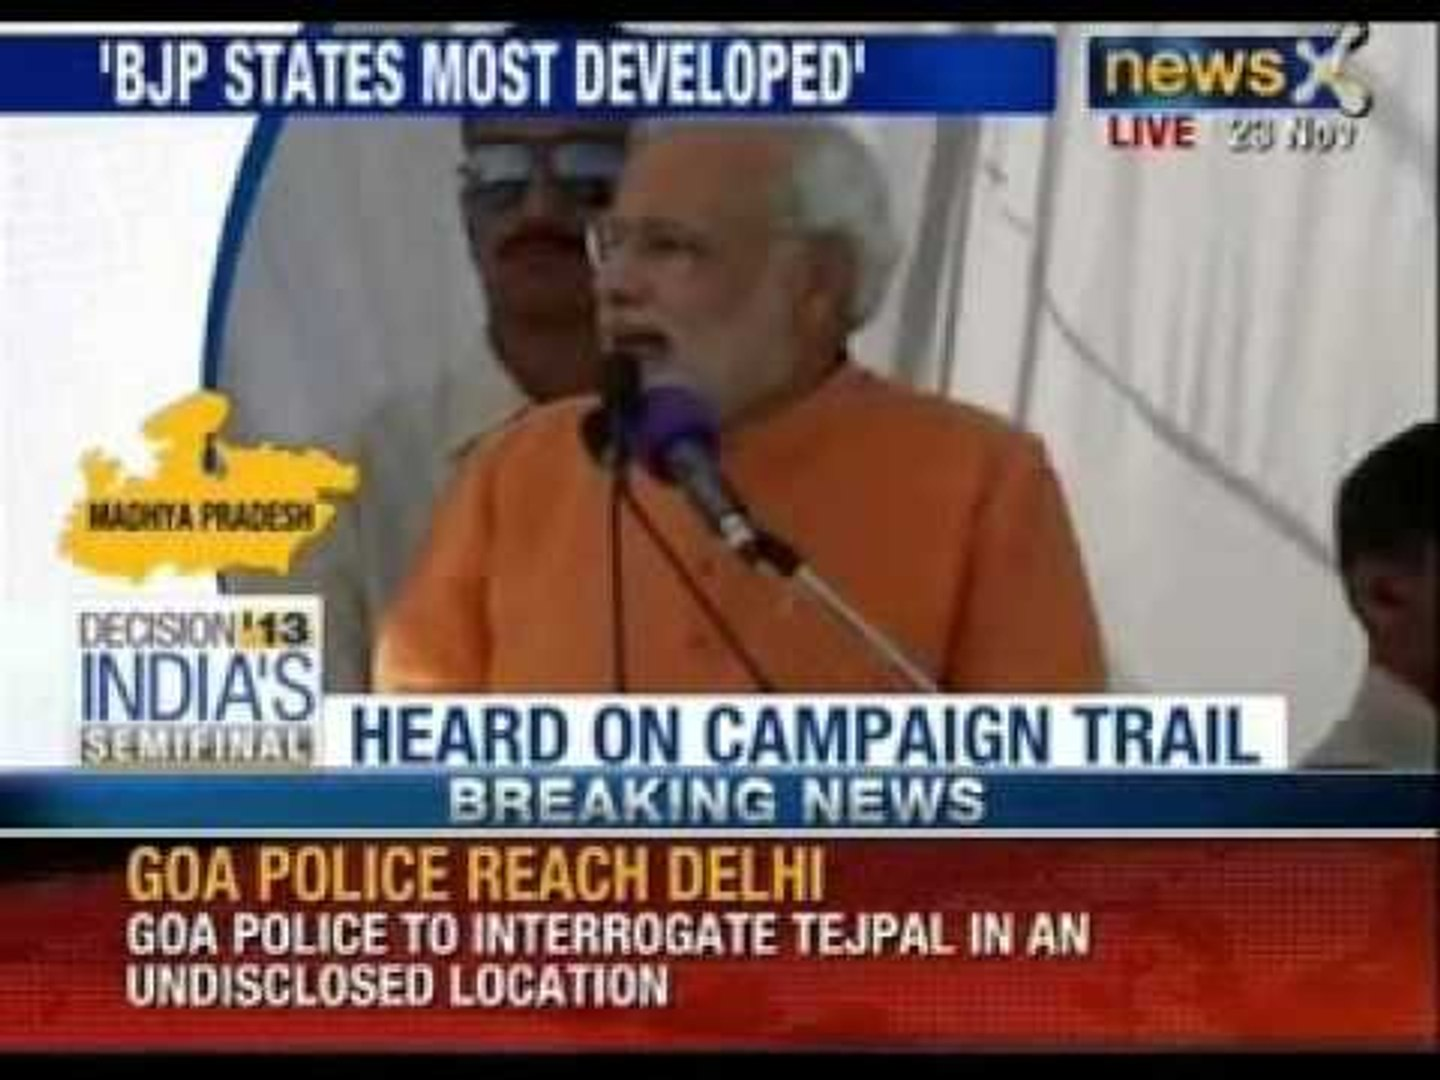 Narendra Modi addresses a rally in Madhya Pradesh - News X